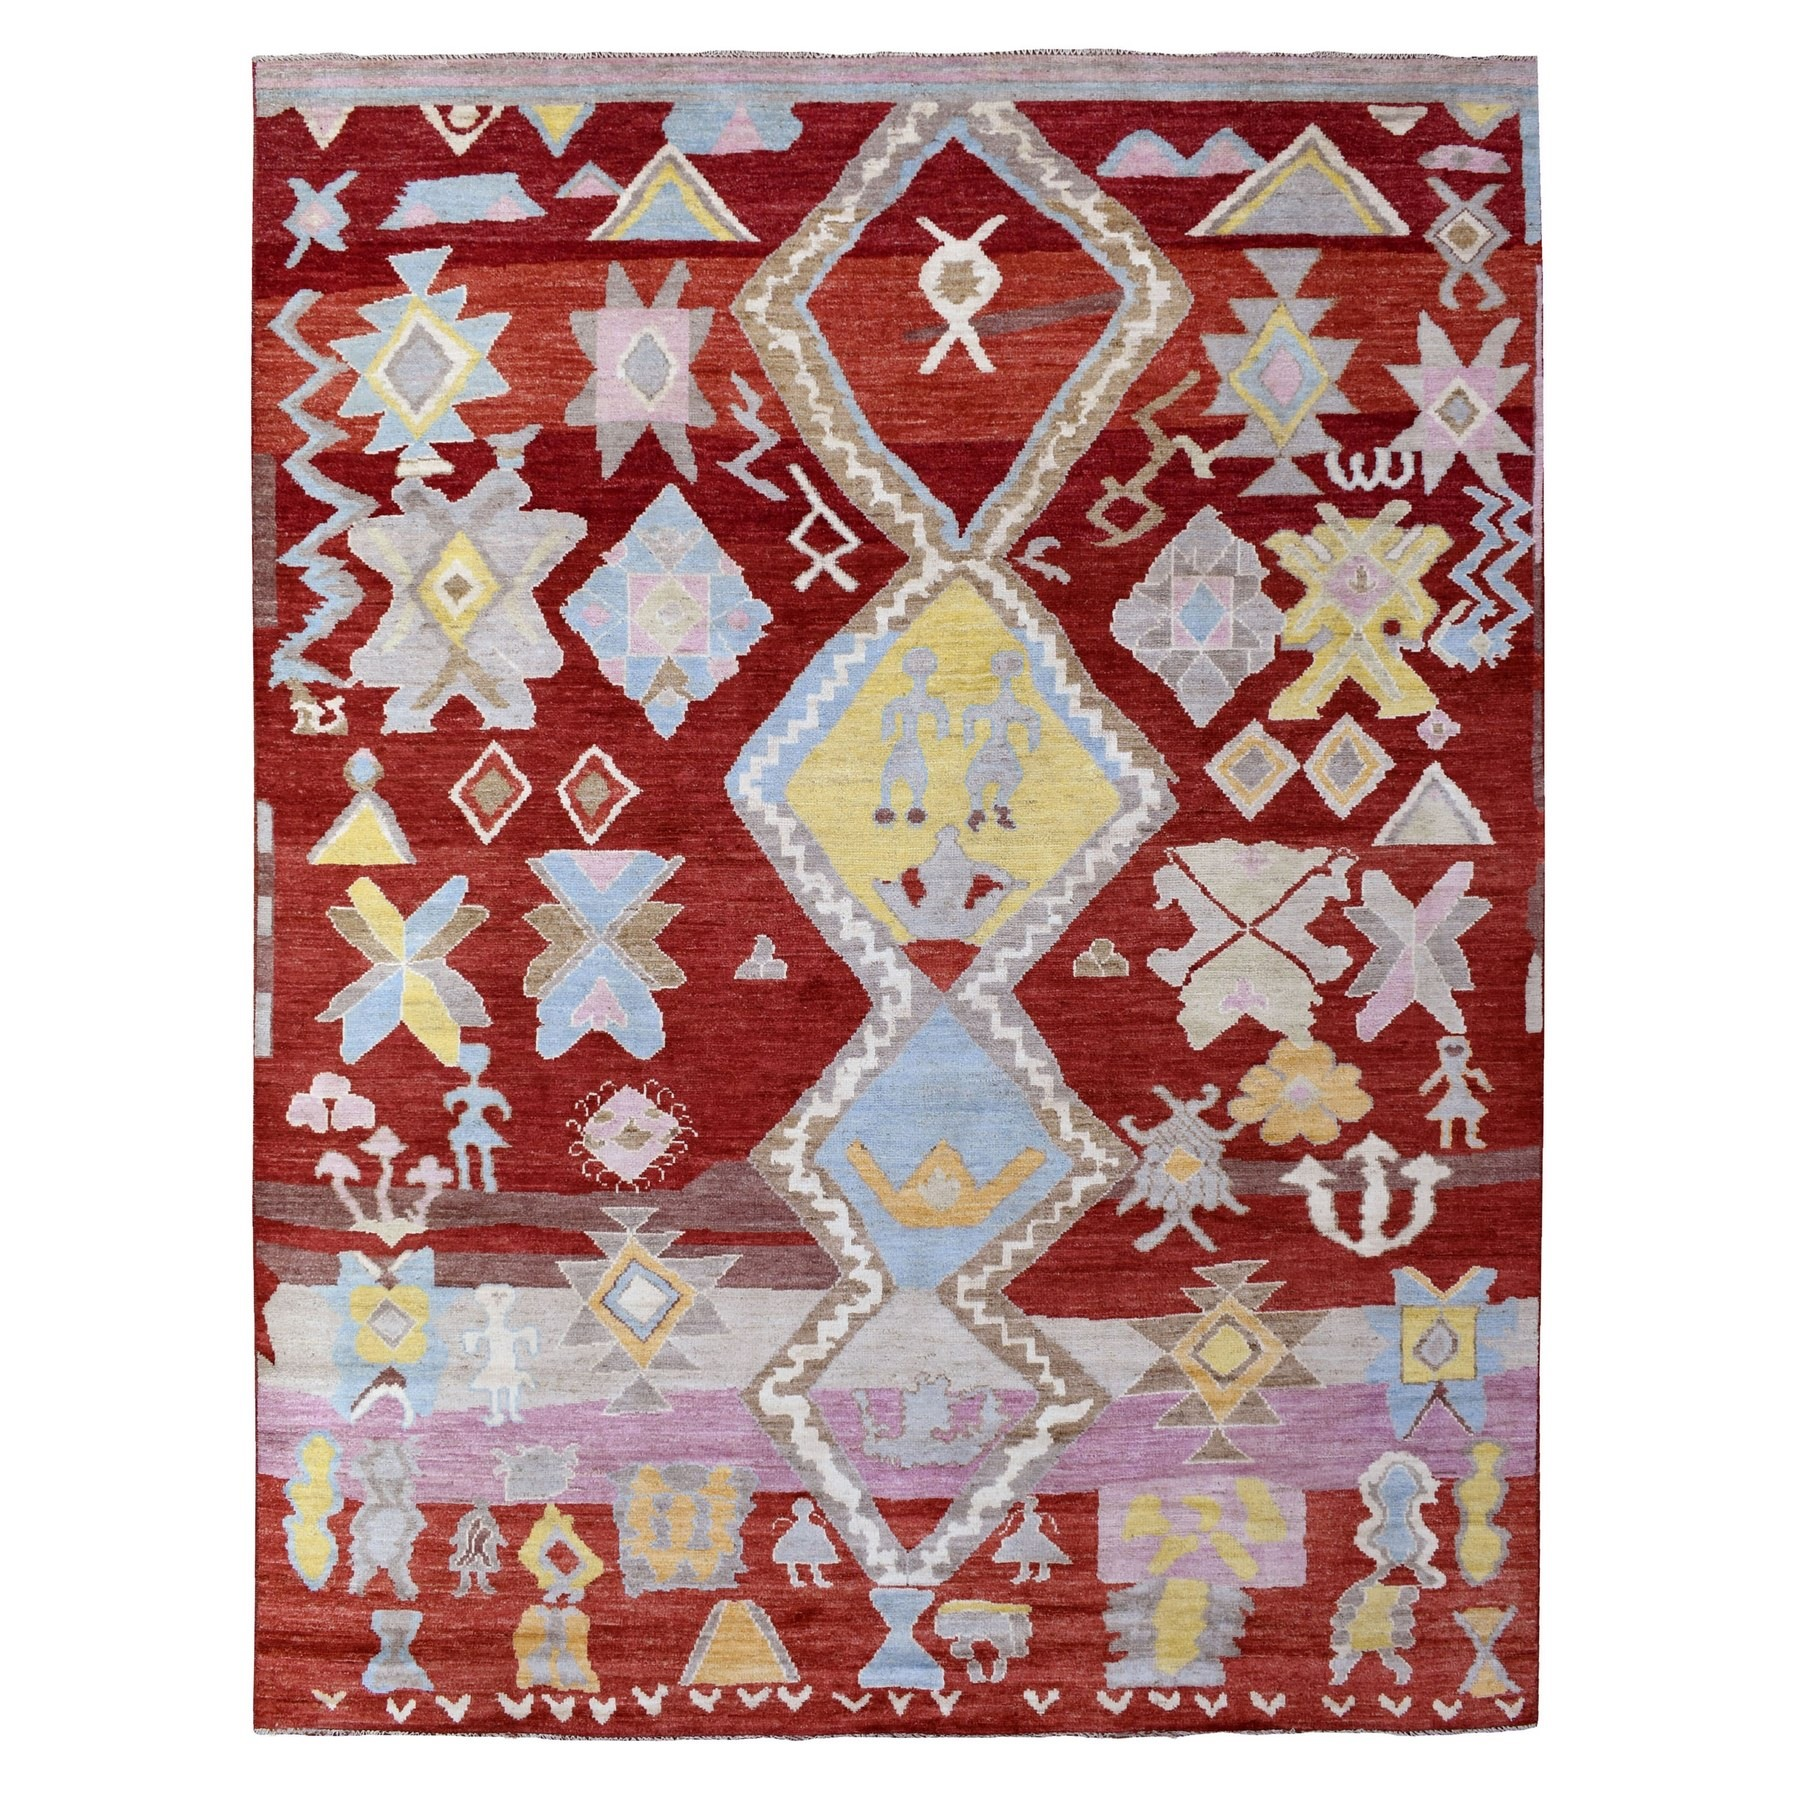 Nomadic And Village Collection Hand Knotted Red Rug No: 1136440